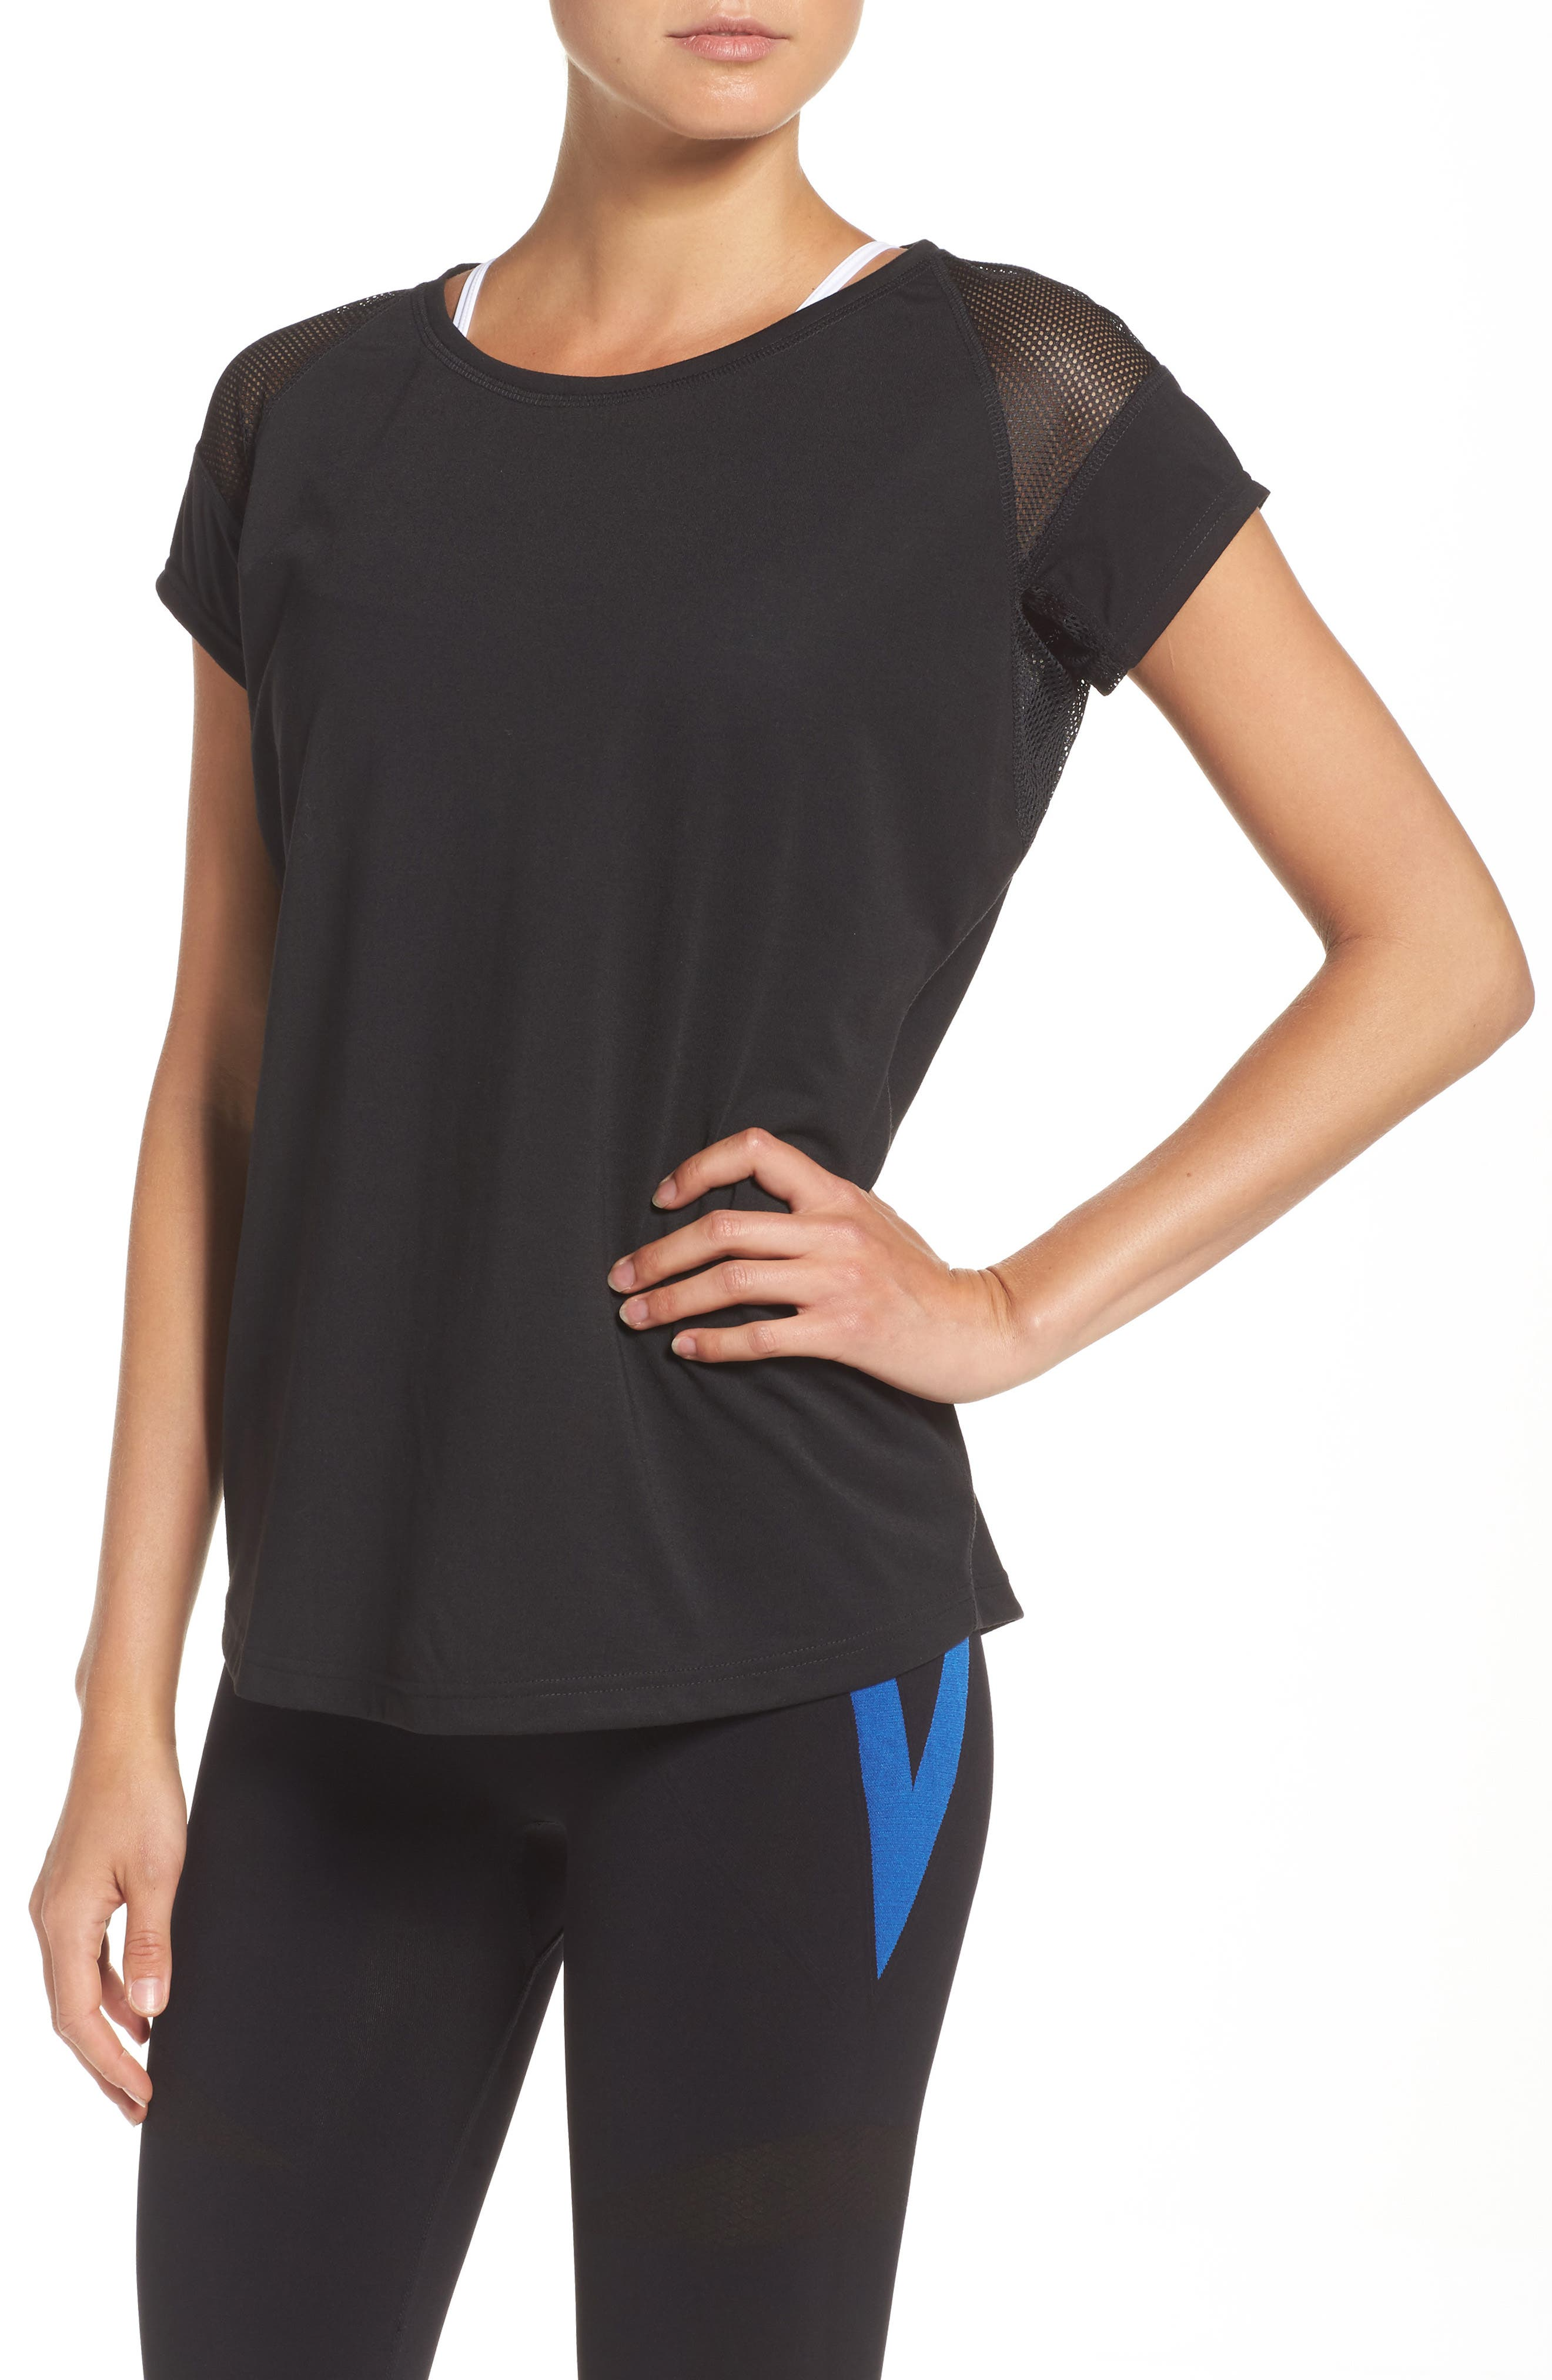 BoomBoom Athletica Sport Perfect Tee,                         Main,                         color, 001